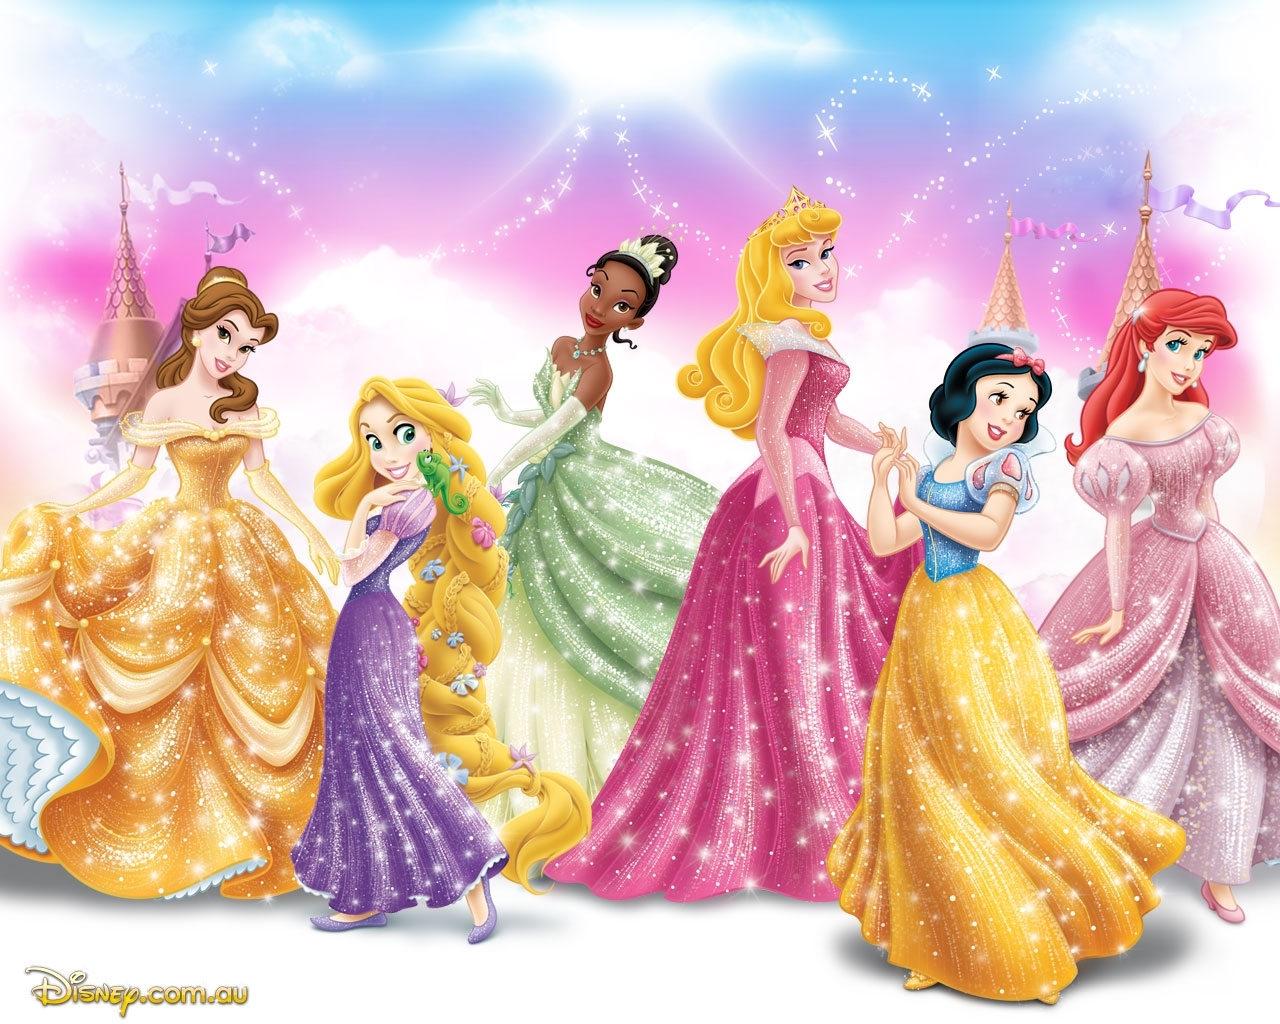 disney princess rapunzel wallpaper hd 07846 - baltana